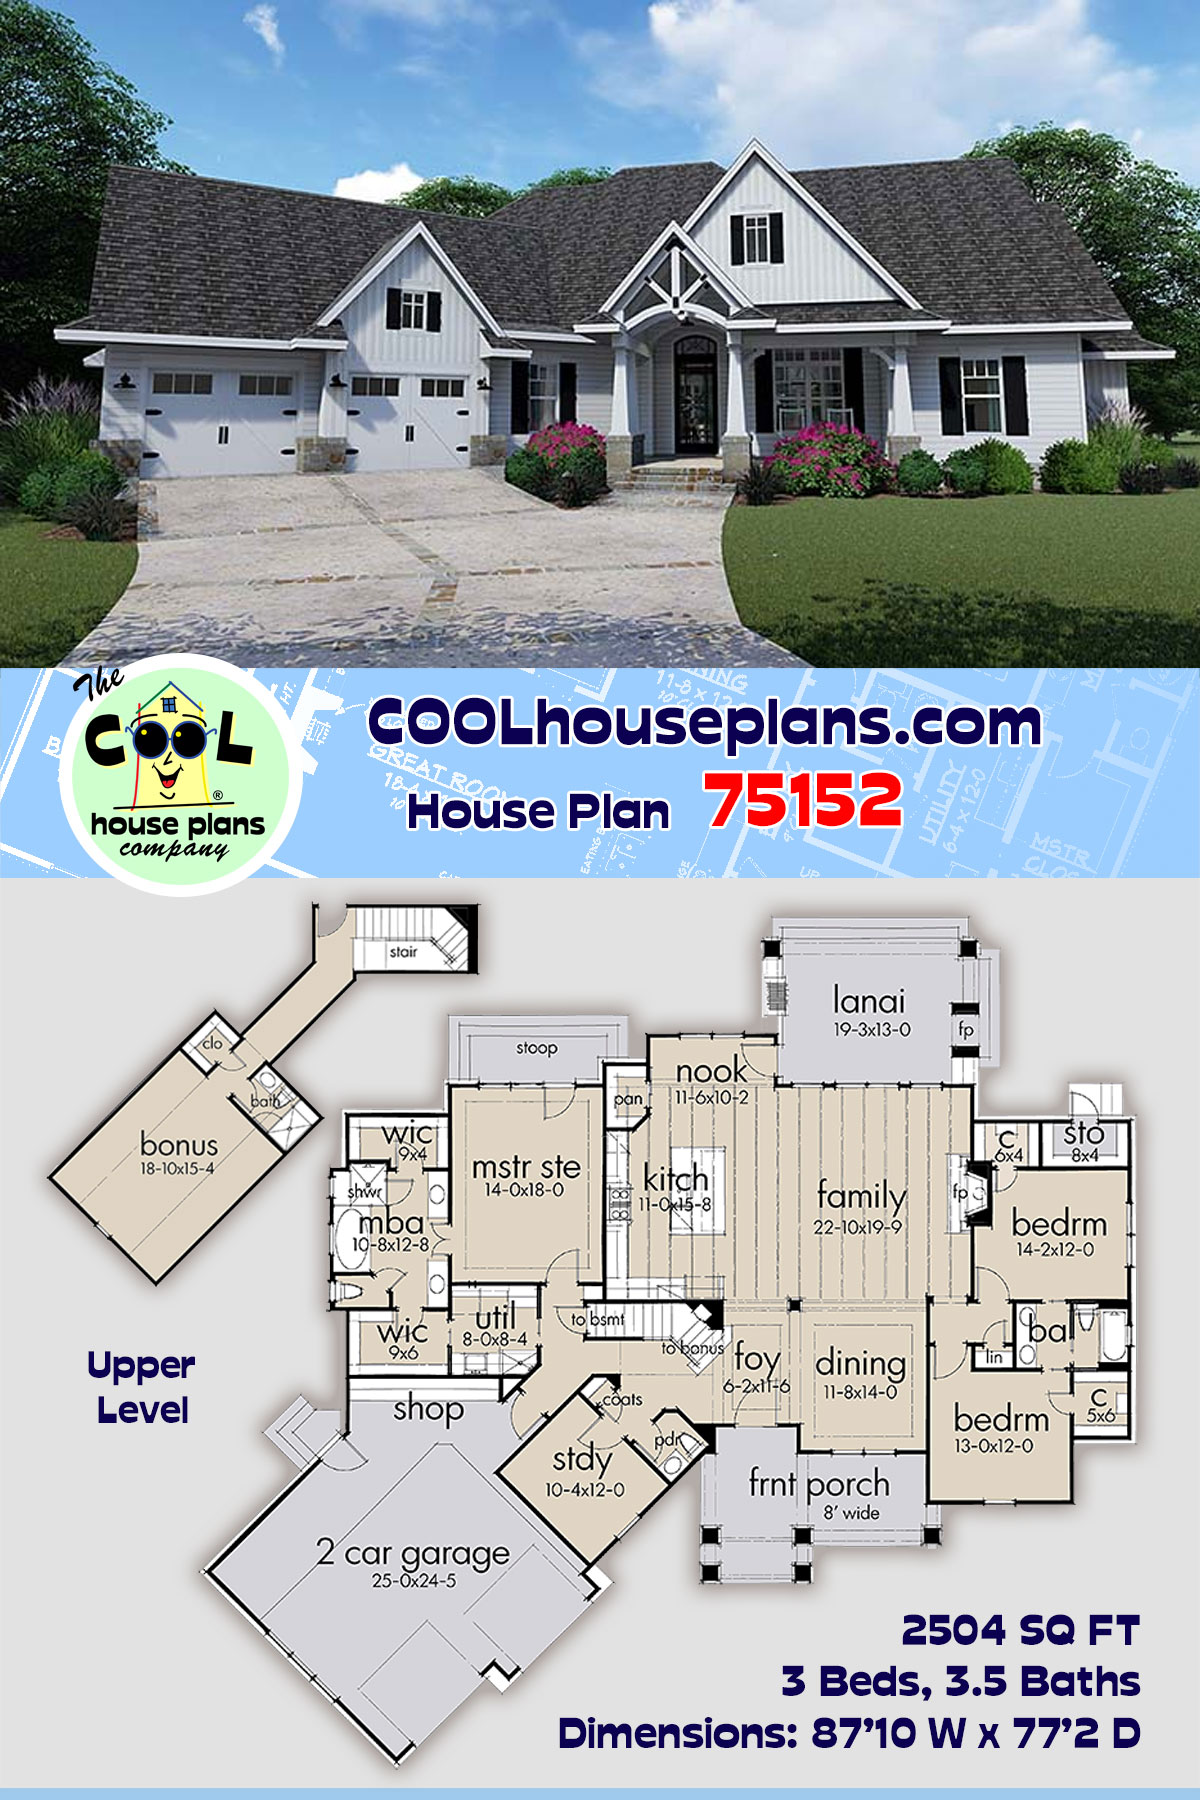 Cottage, Country, Farmhouse, Southern, Traditional House Plan 75152 with 3 Beds, 4 Baths, 2 Car Garage